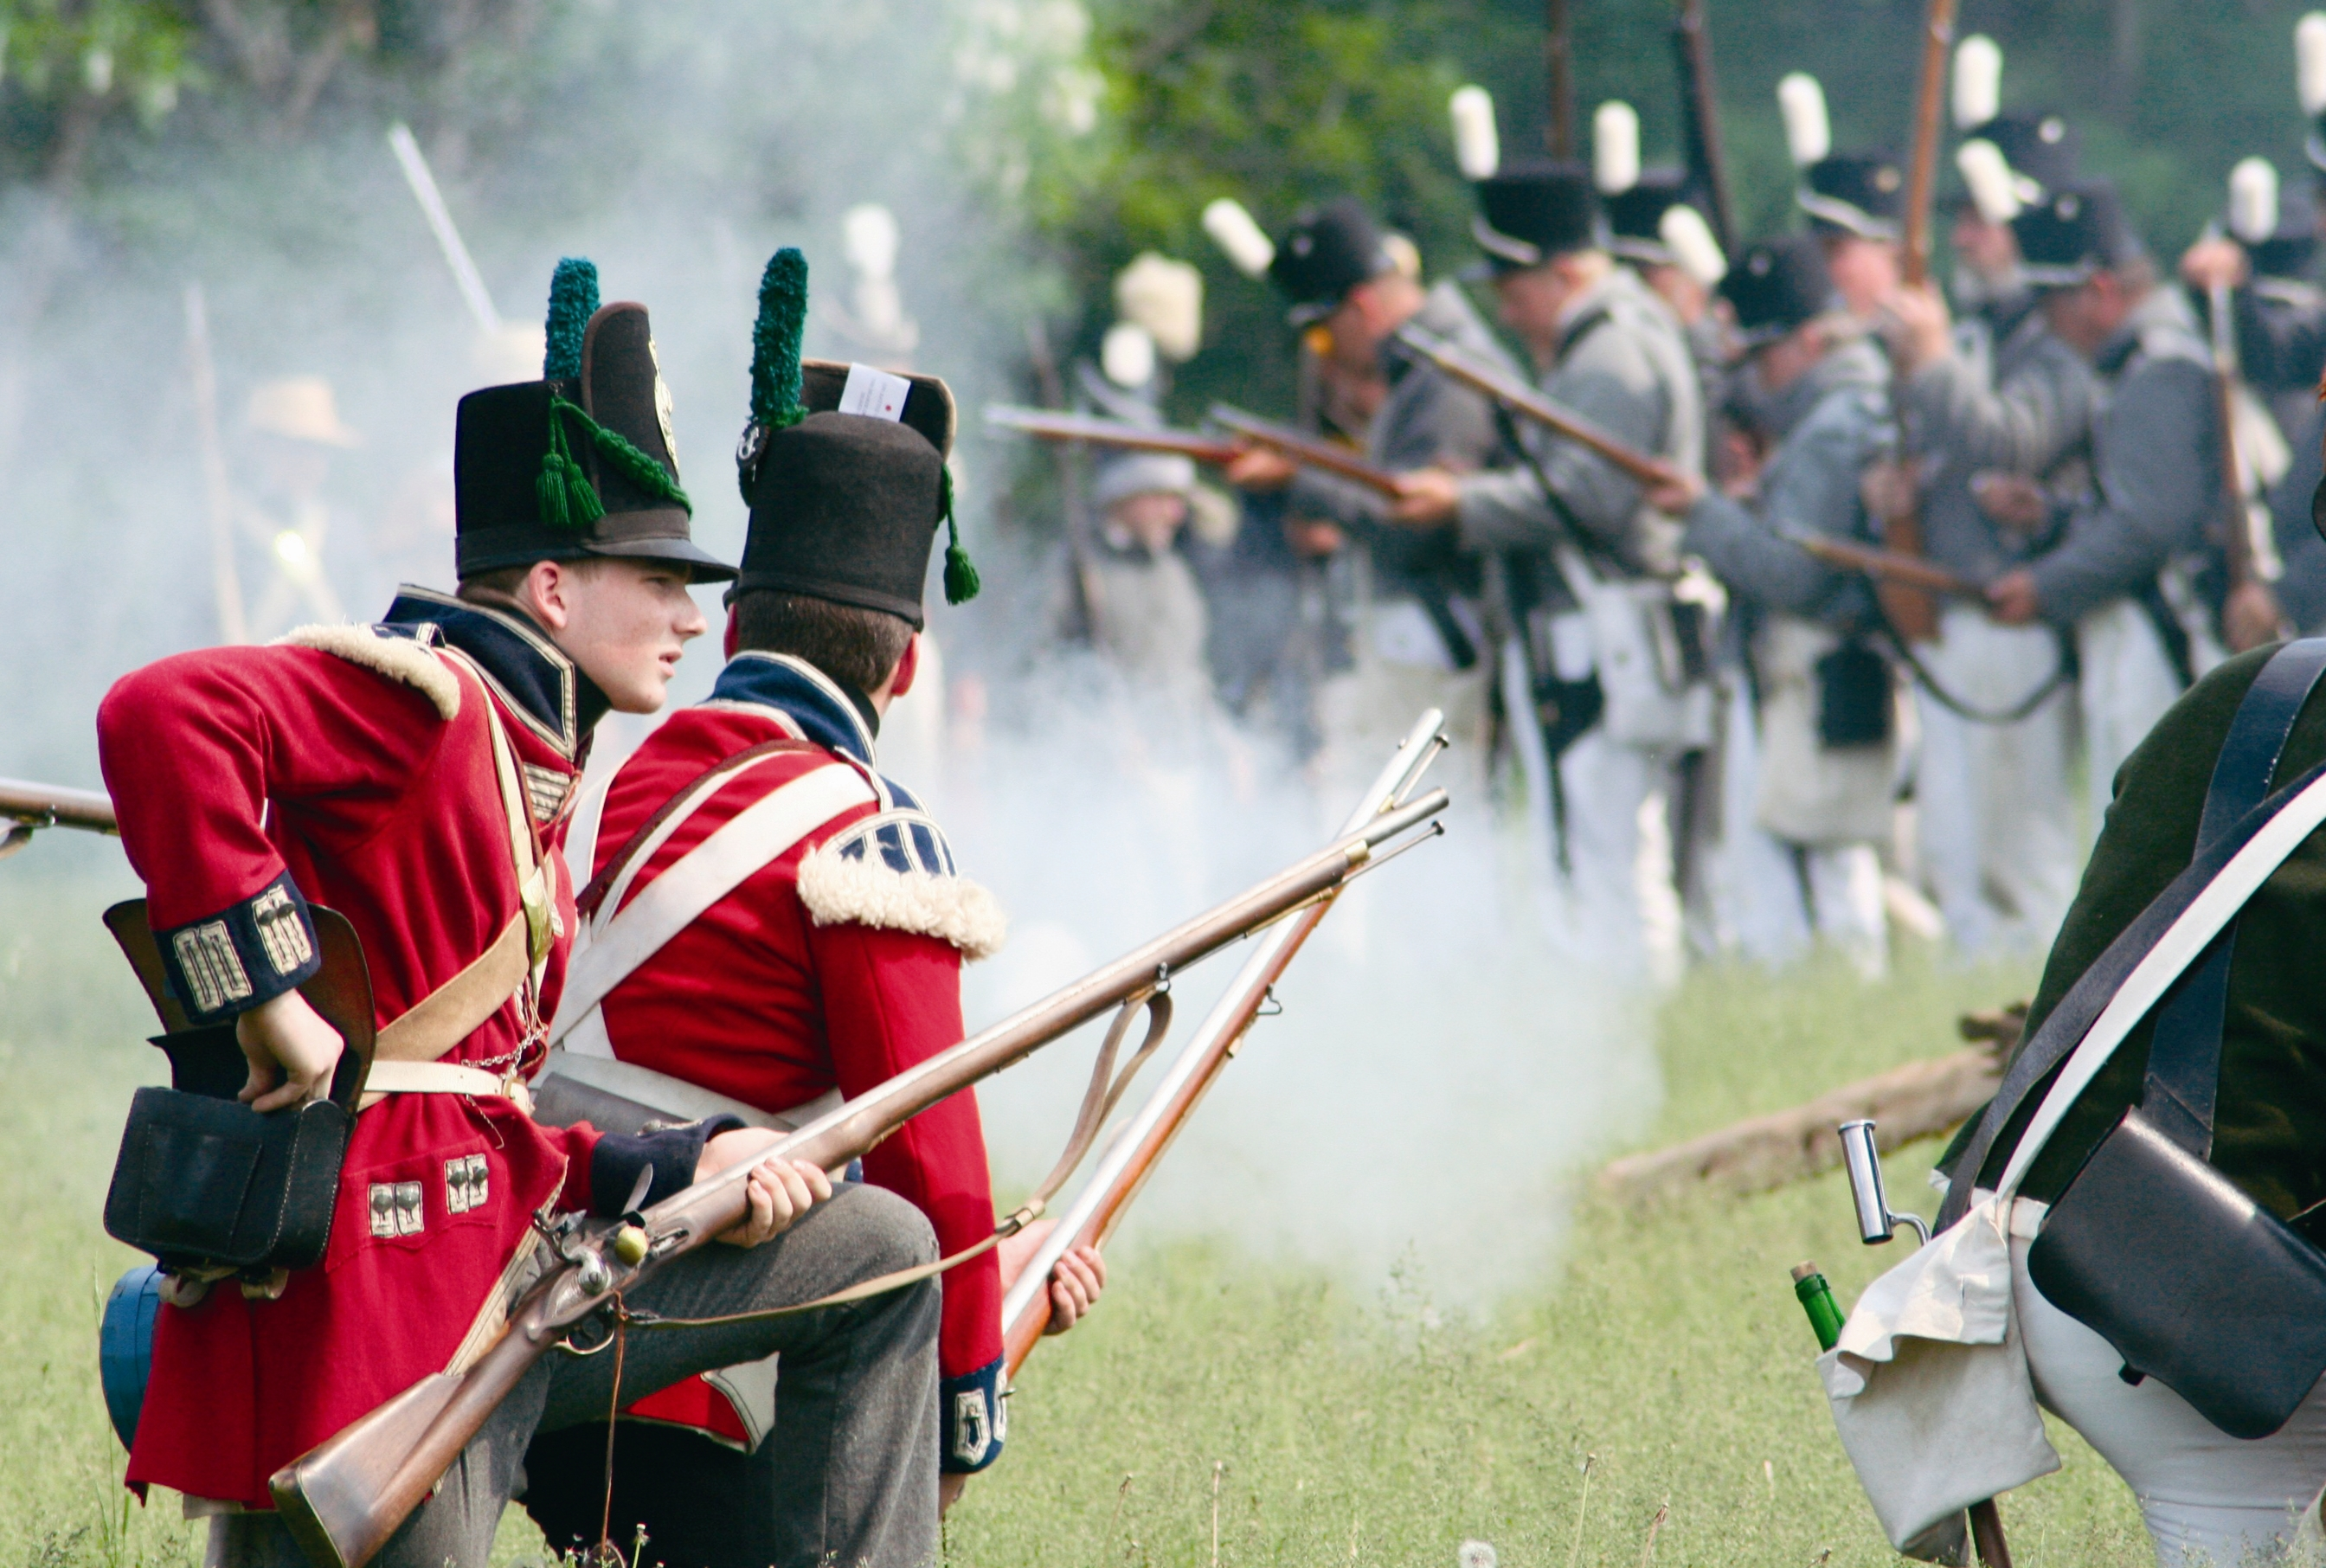 2019 Re-enactment of the Battle of Stoney Creek - Festivals